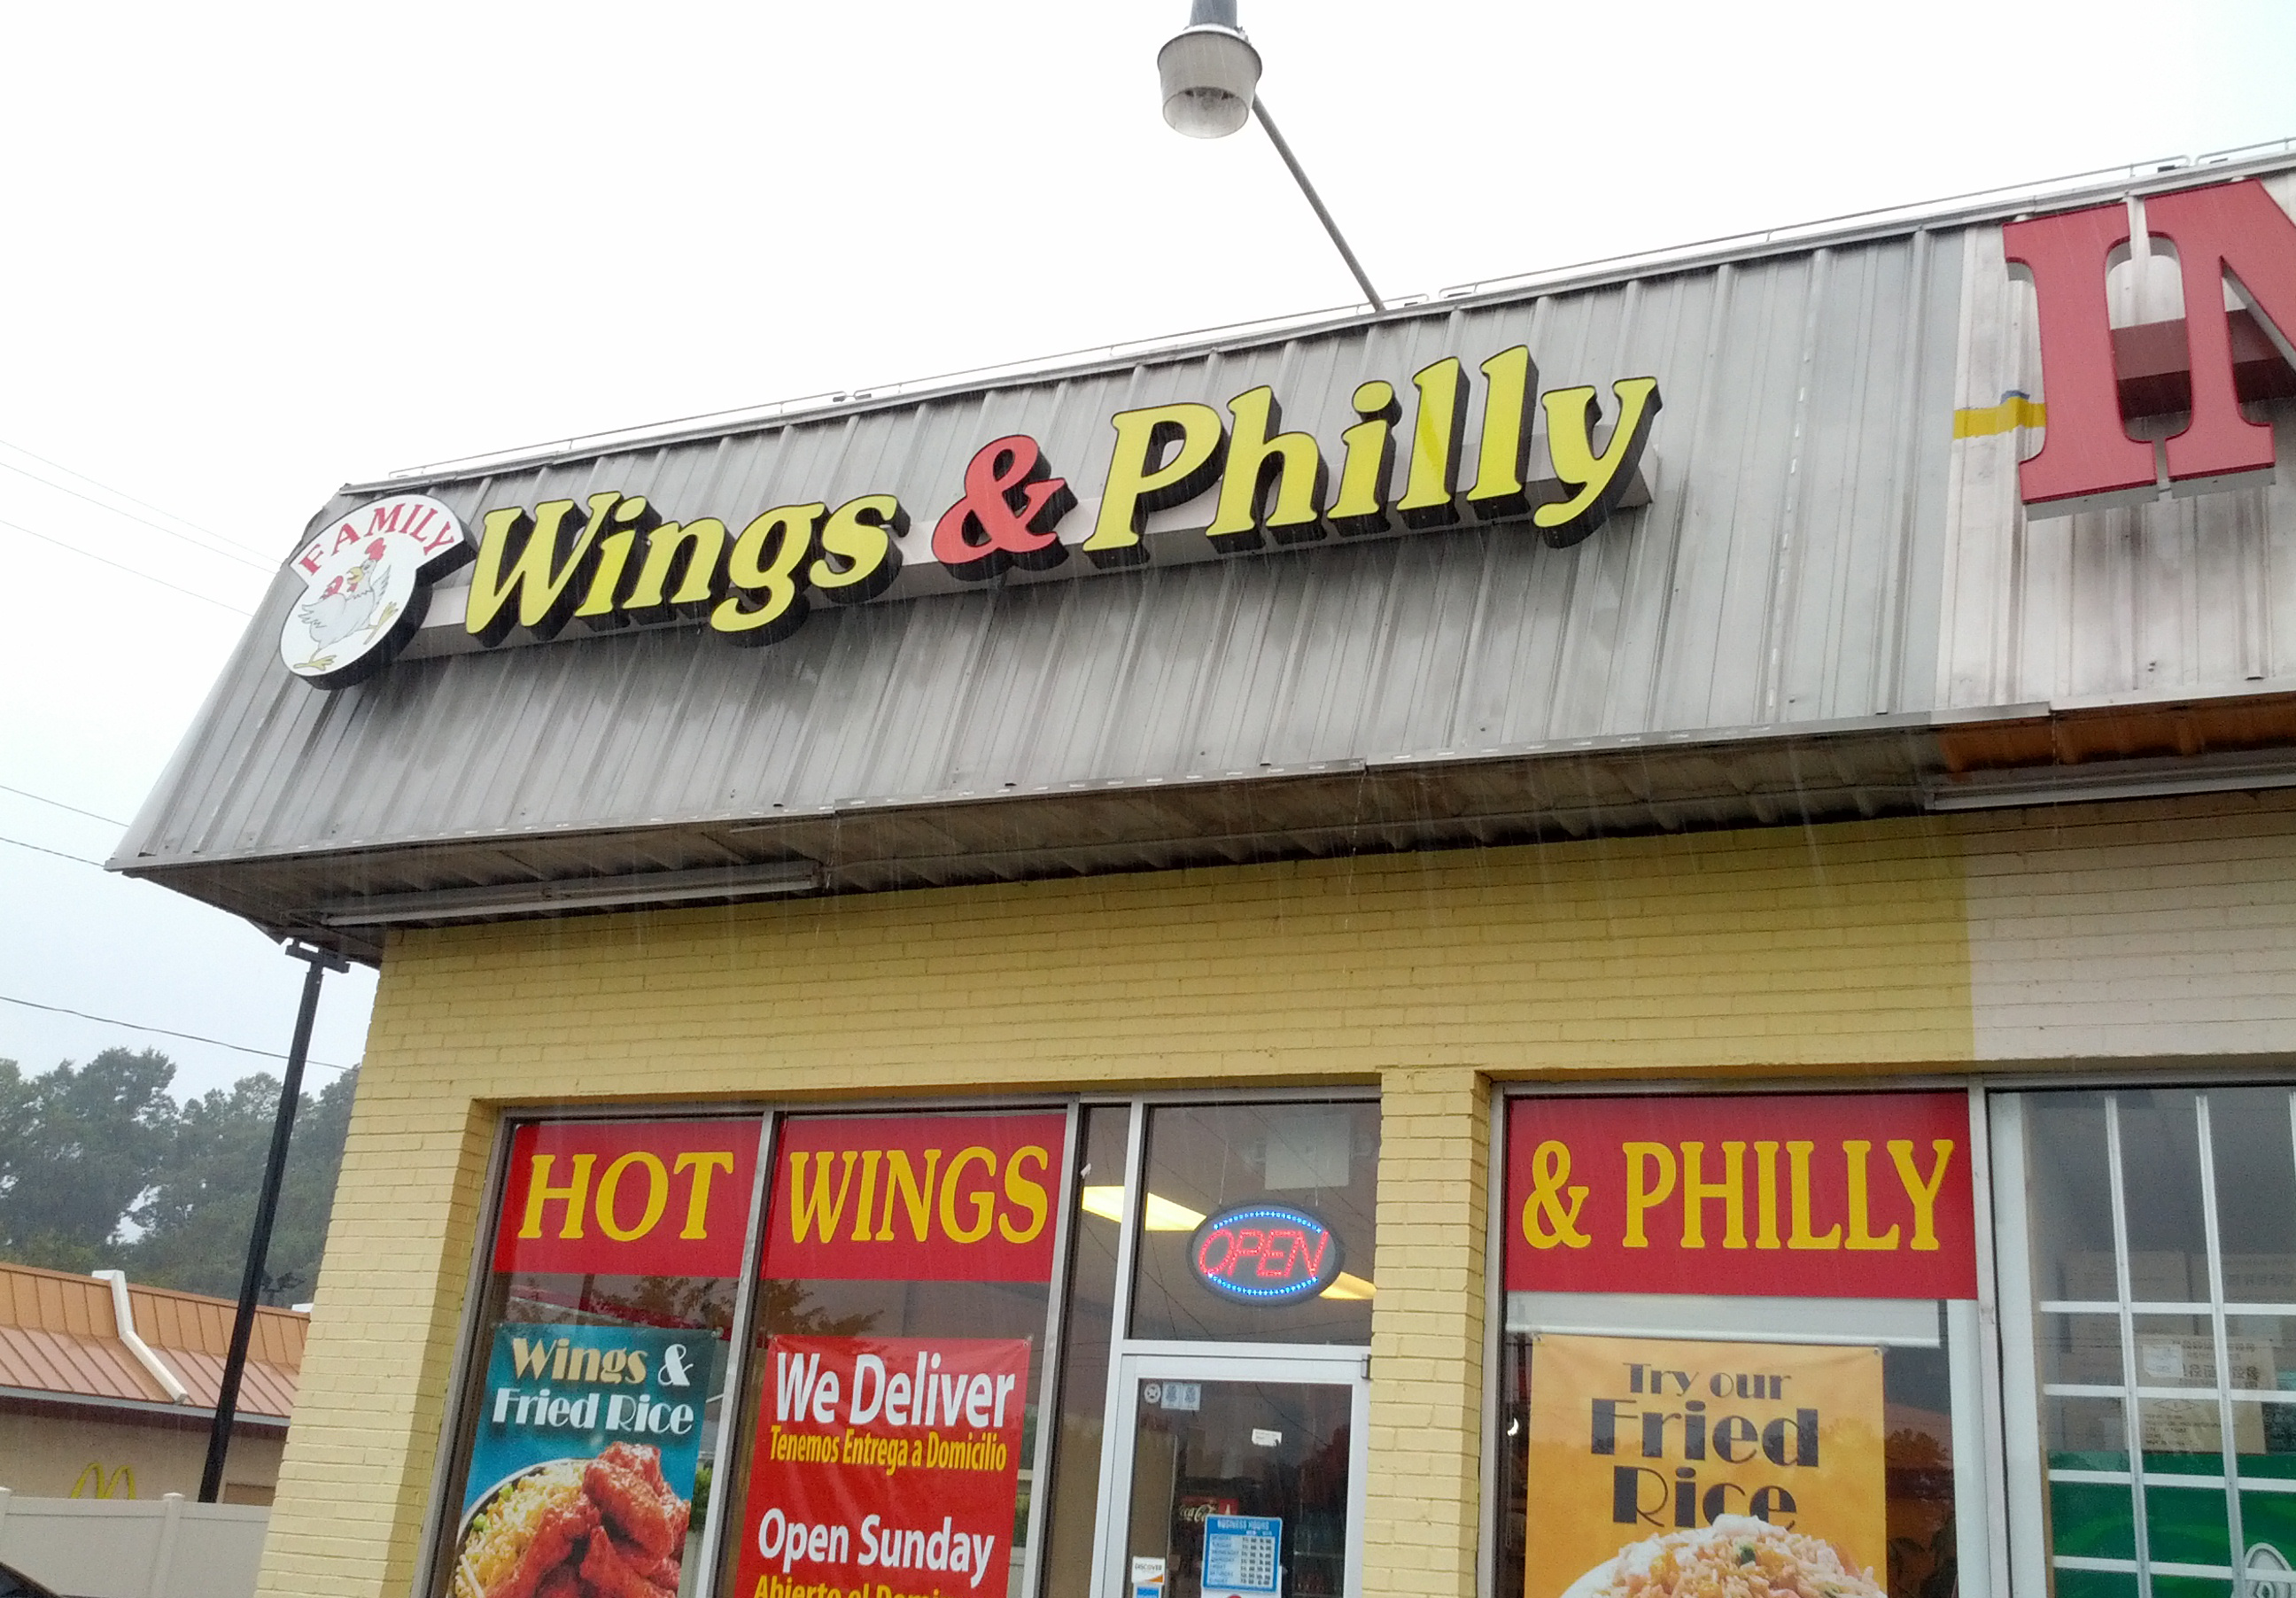 Family Wings and Philly